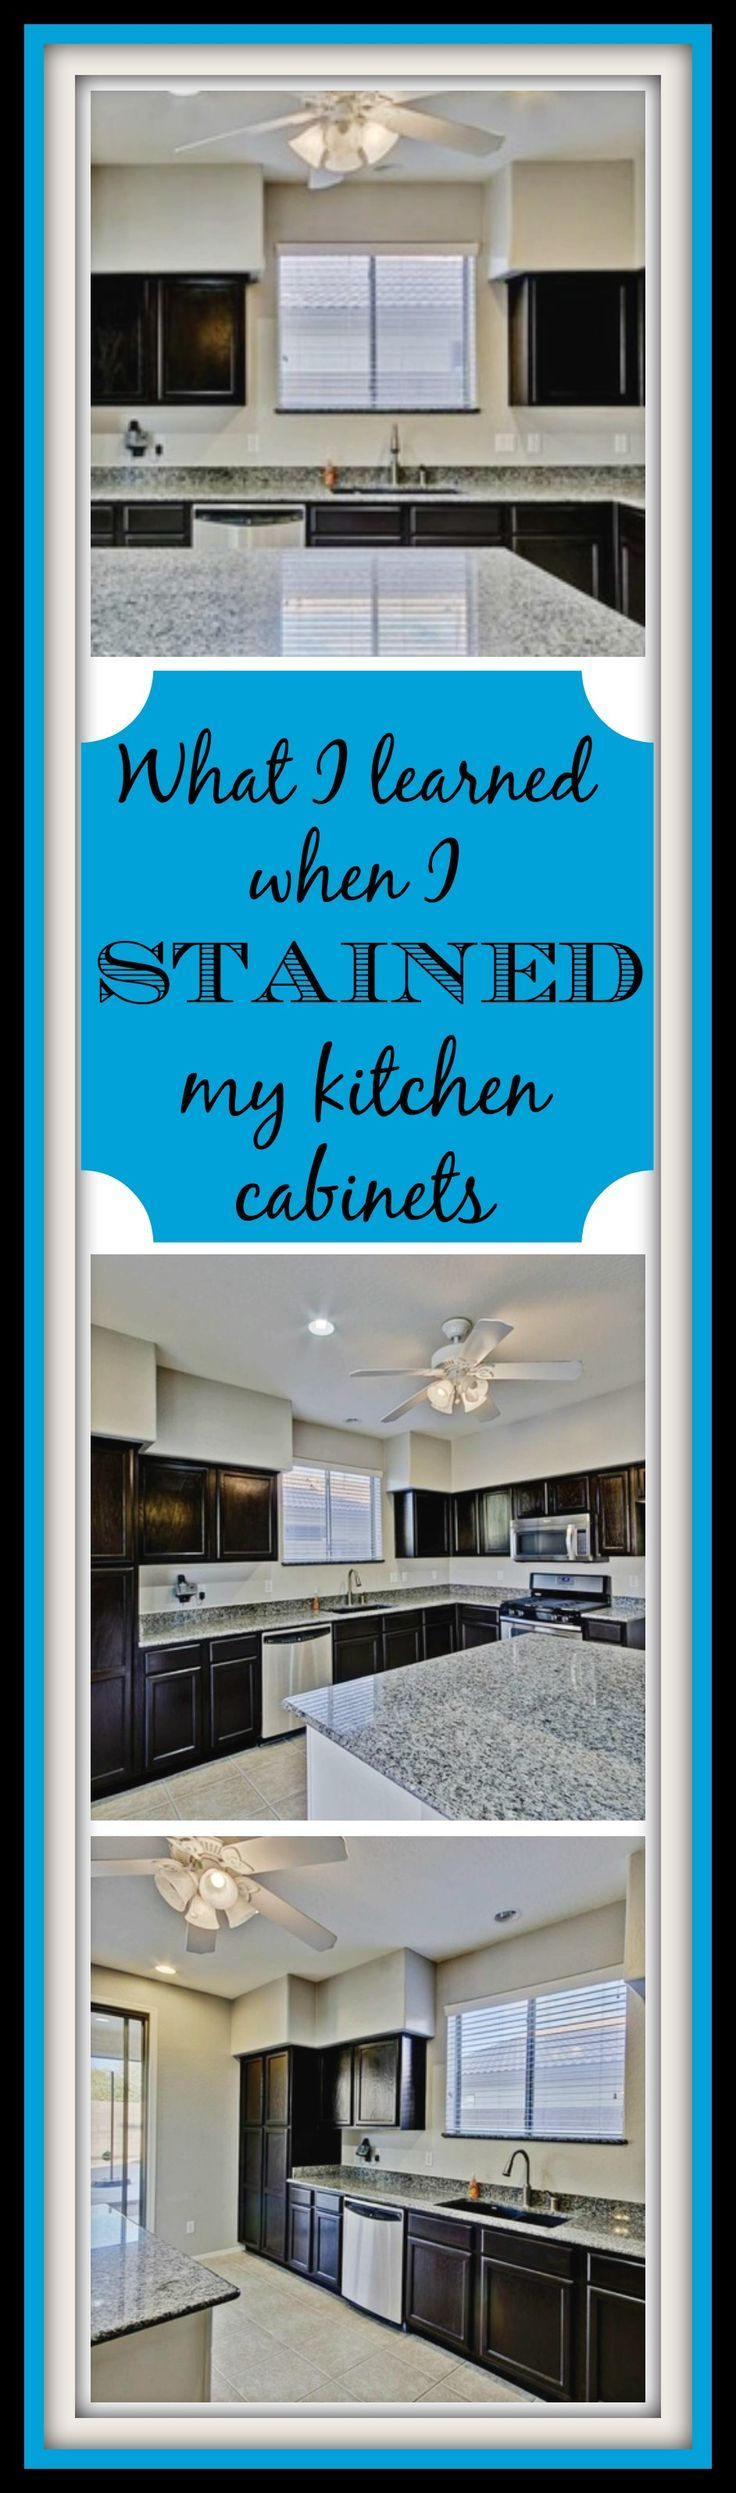 Easy DIY instructions on how to stain kitchen or bathroom cabinets. For around $100 you can completely transform your kitchen! Product used is General Finishes Java Gel Stain.